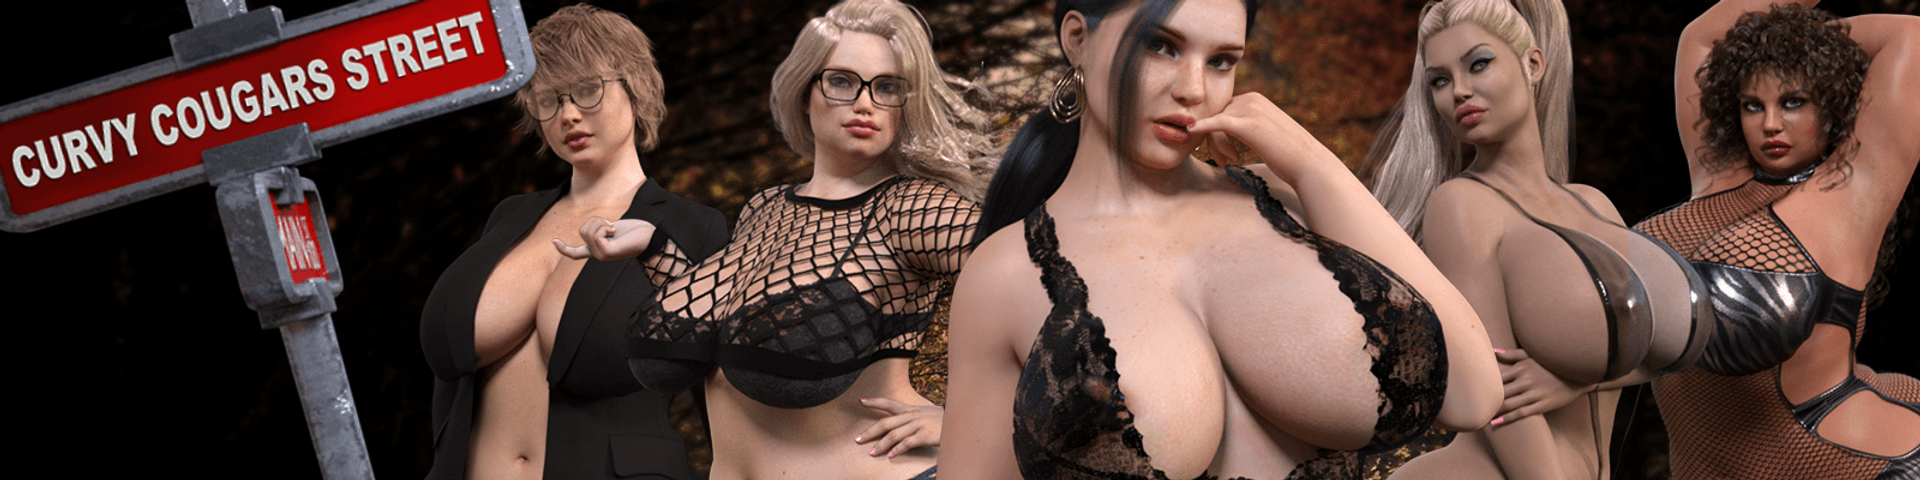 Curvy Cougars Street – Version 0.5 - Best patreon family adult game 2